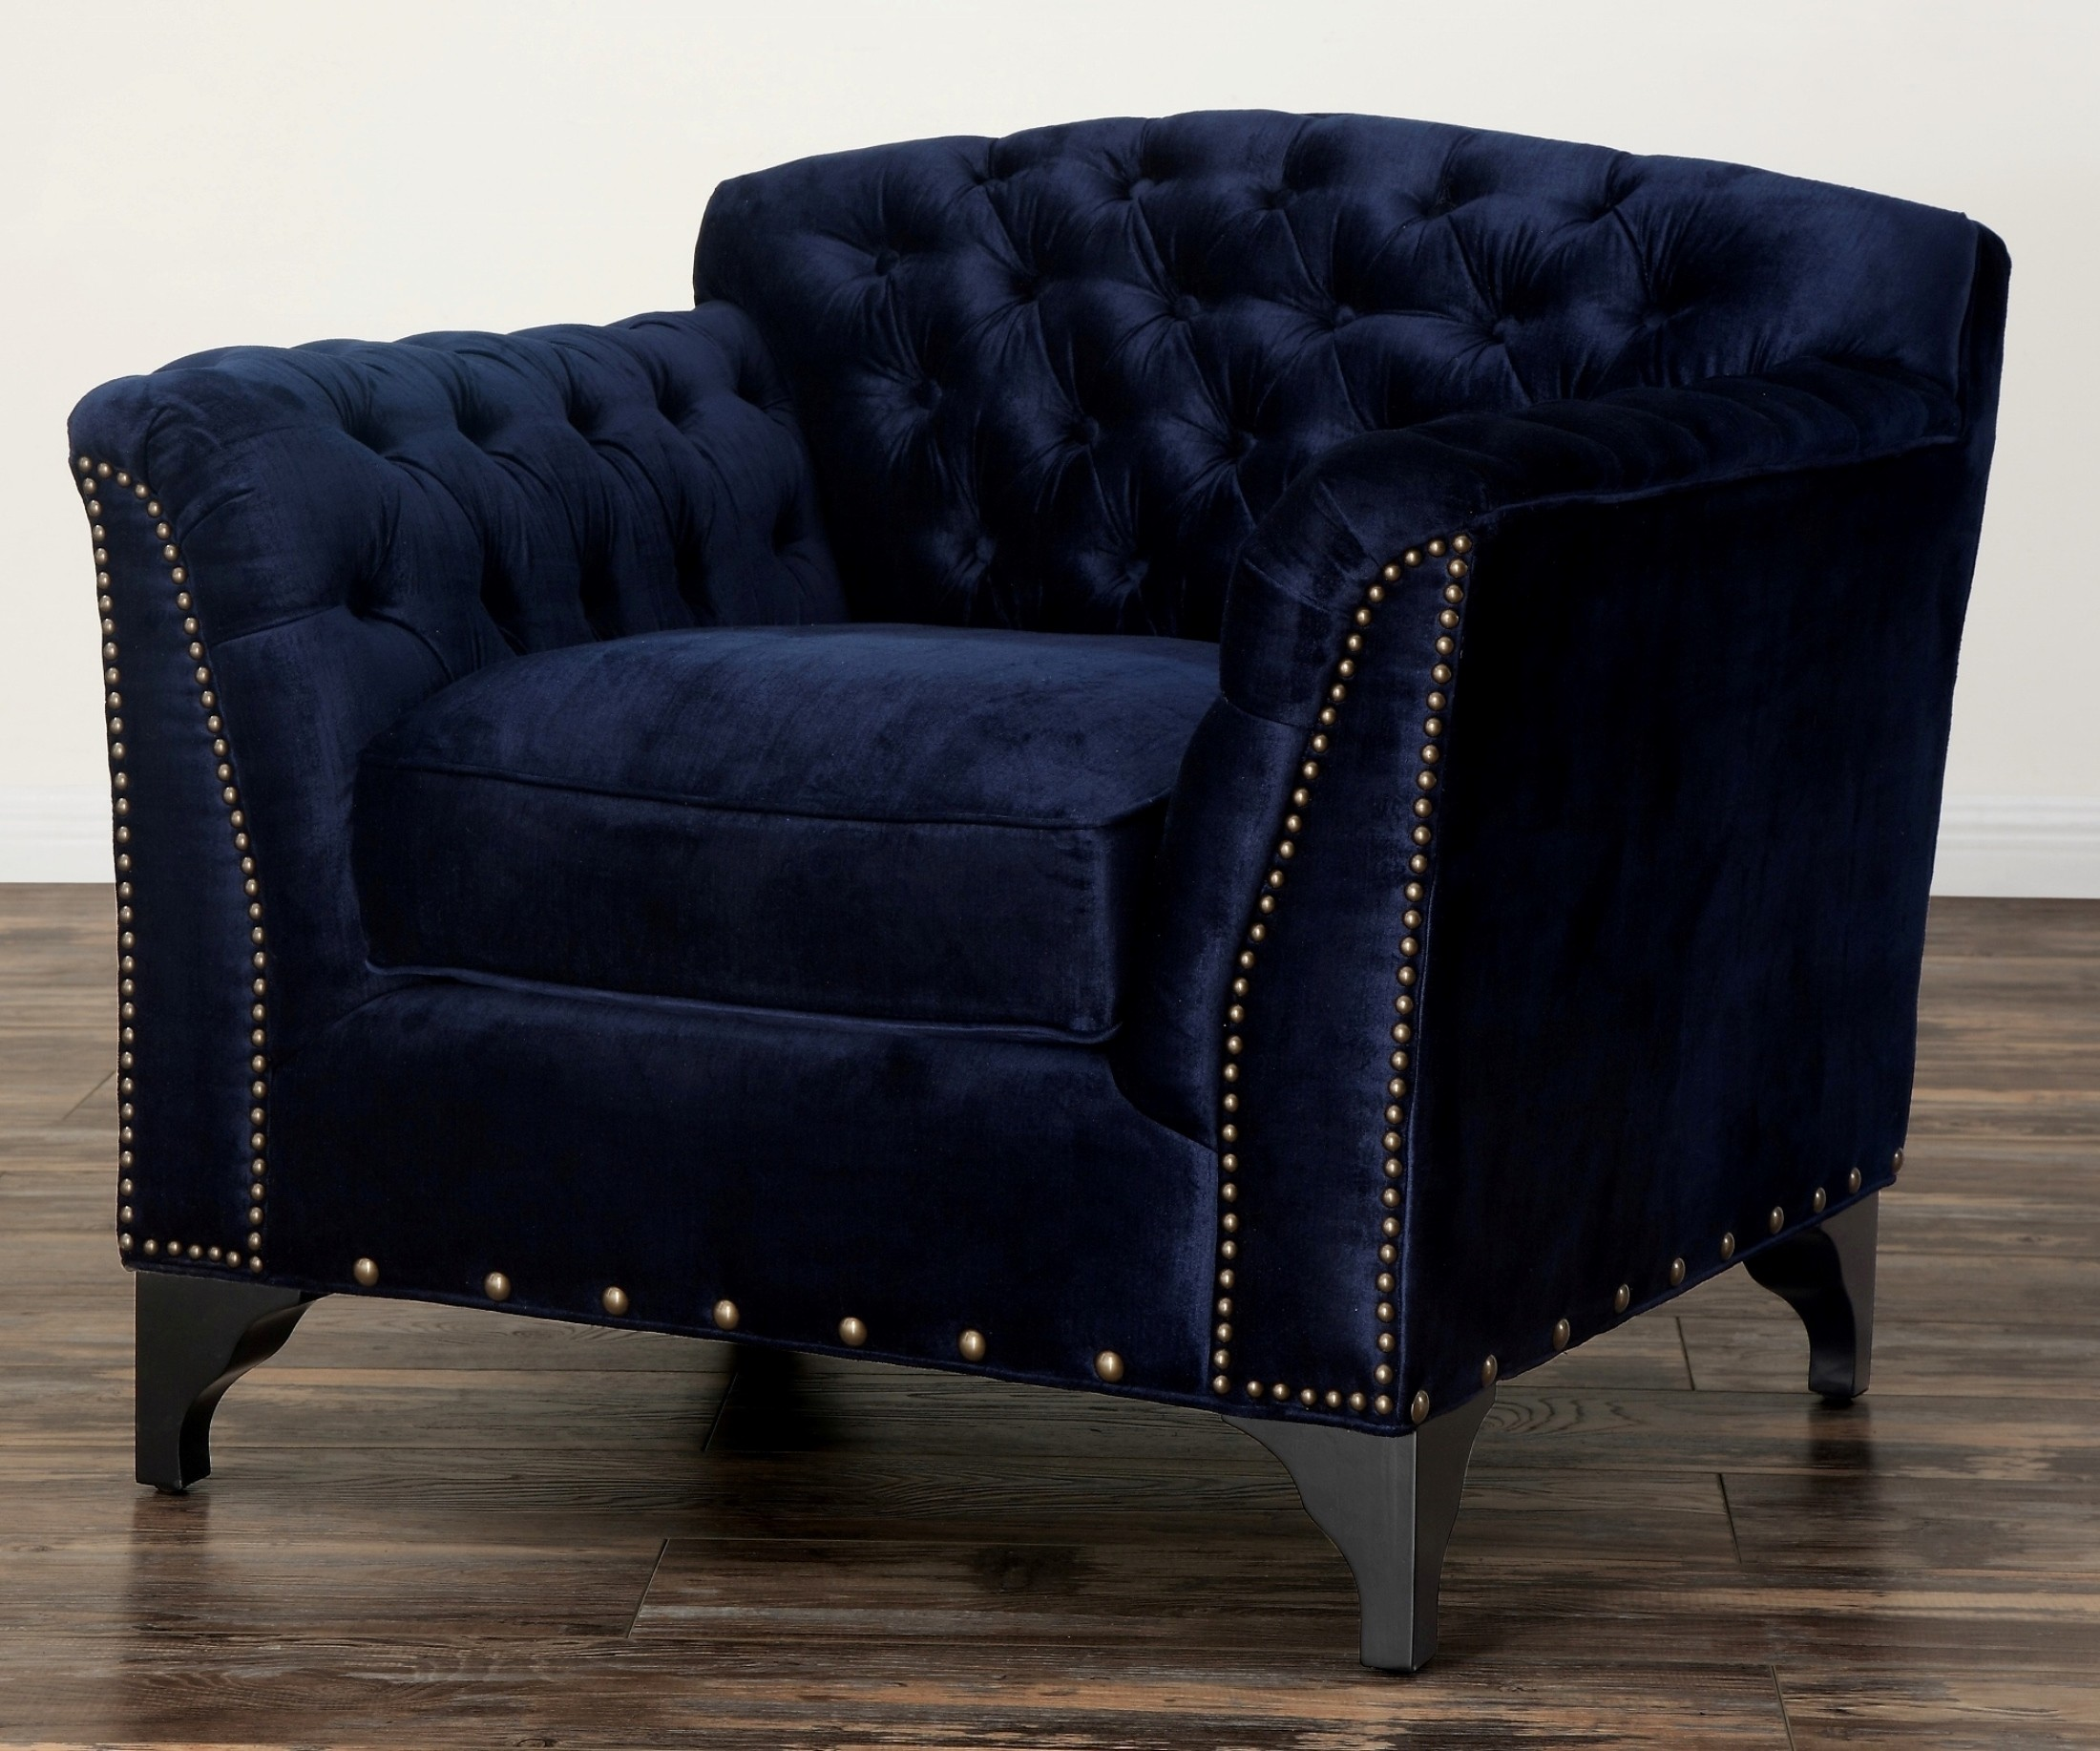 Velvet Club Chair Waterford Navy Velvet Club Chair From Tov Tov C42